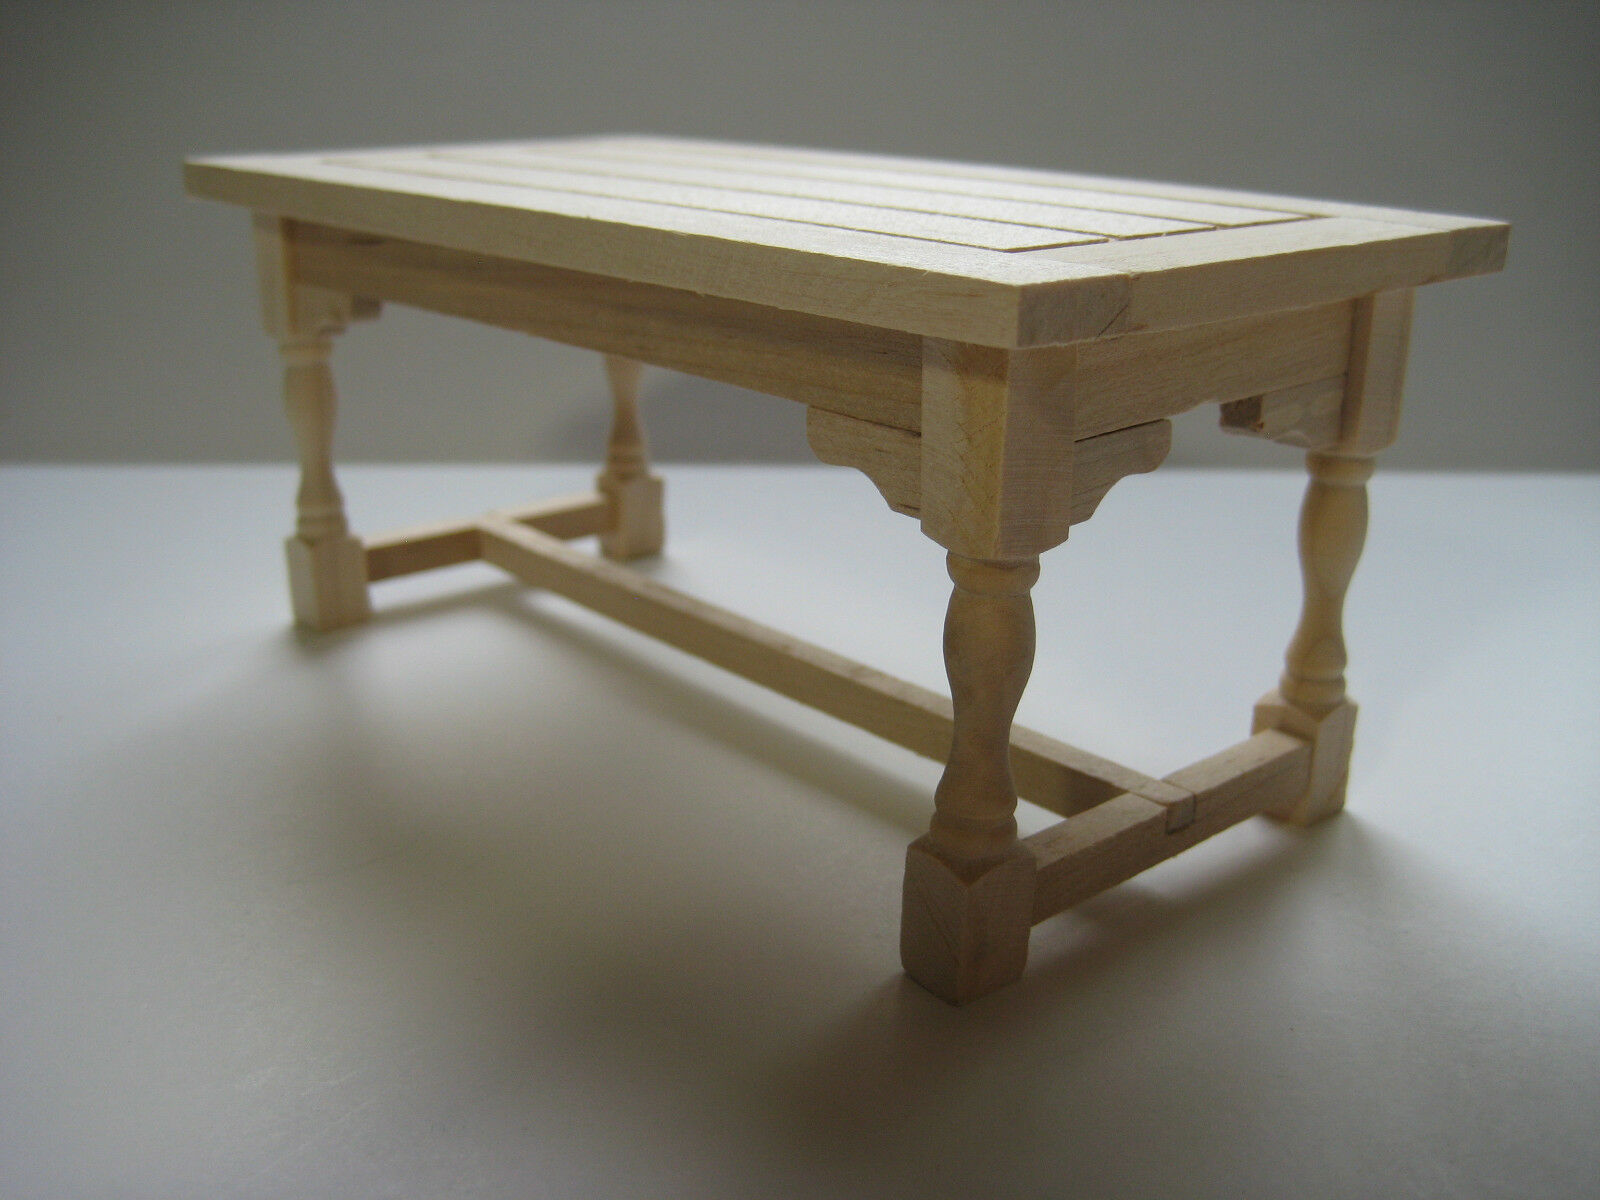 Dollhouse miniature unfinished kitchen or dining room table 1 12 scale furniture cad - Dollhouse dining room furniture ...